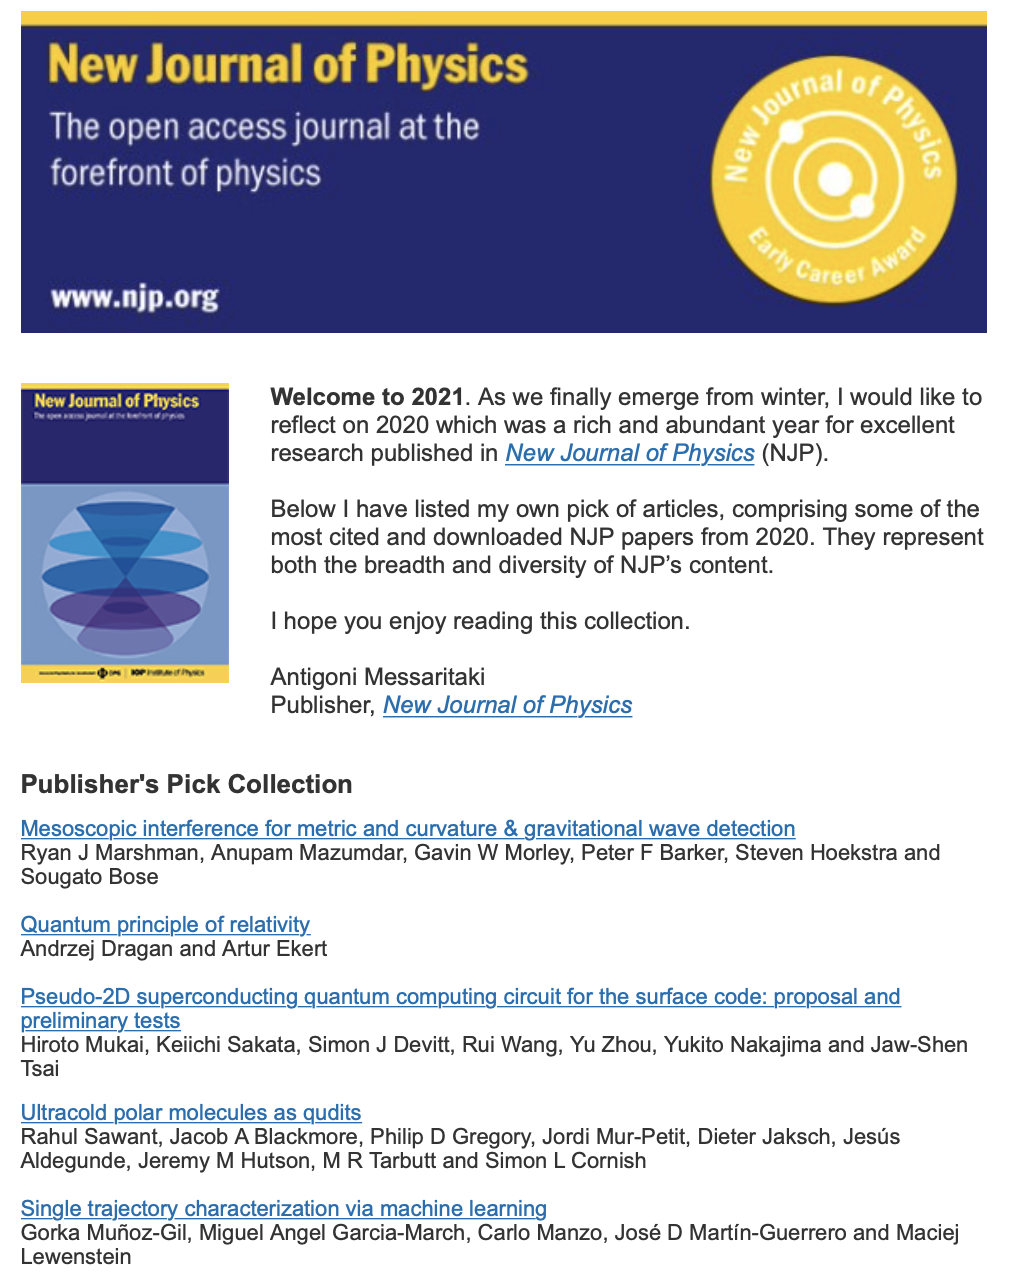 New Journal of Physics selects an IDAL paper as one of the best ones published in 2020